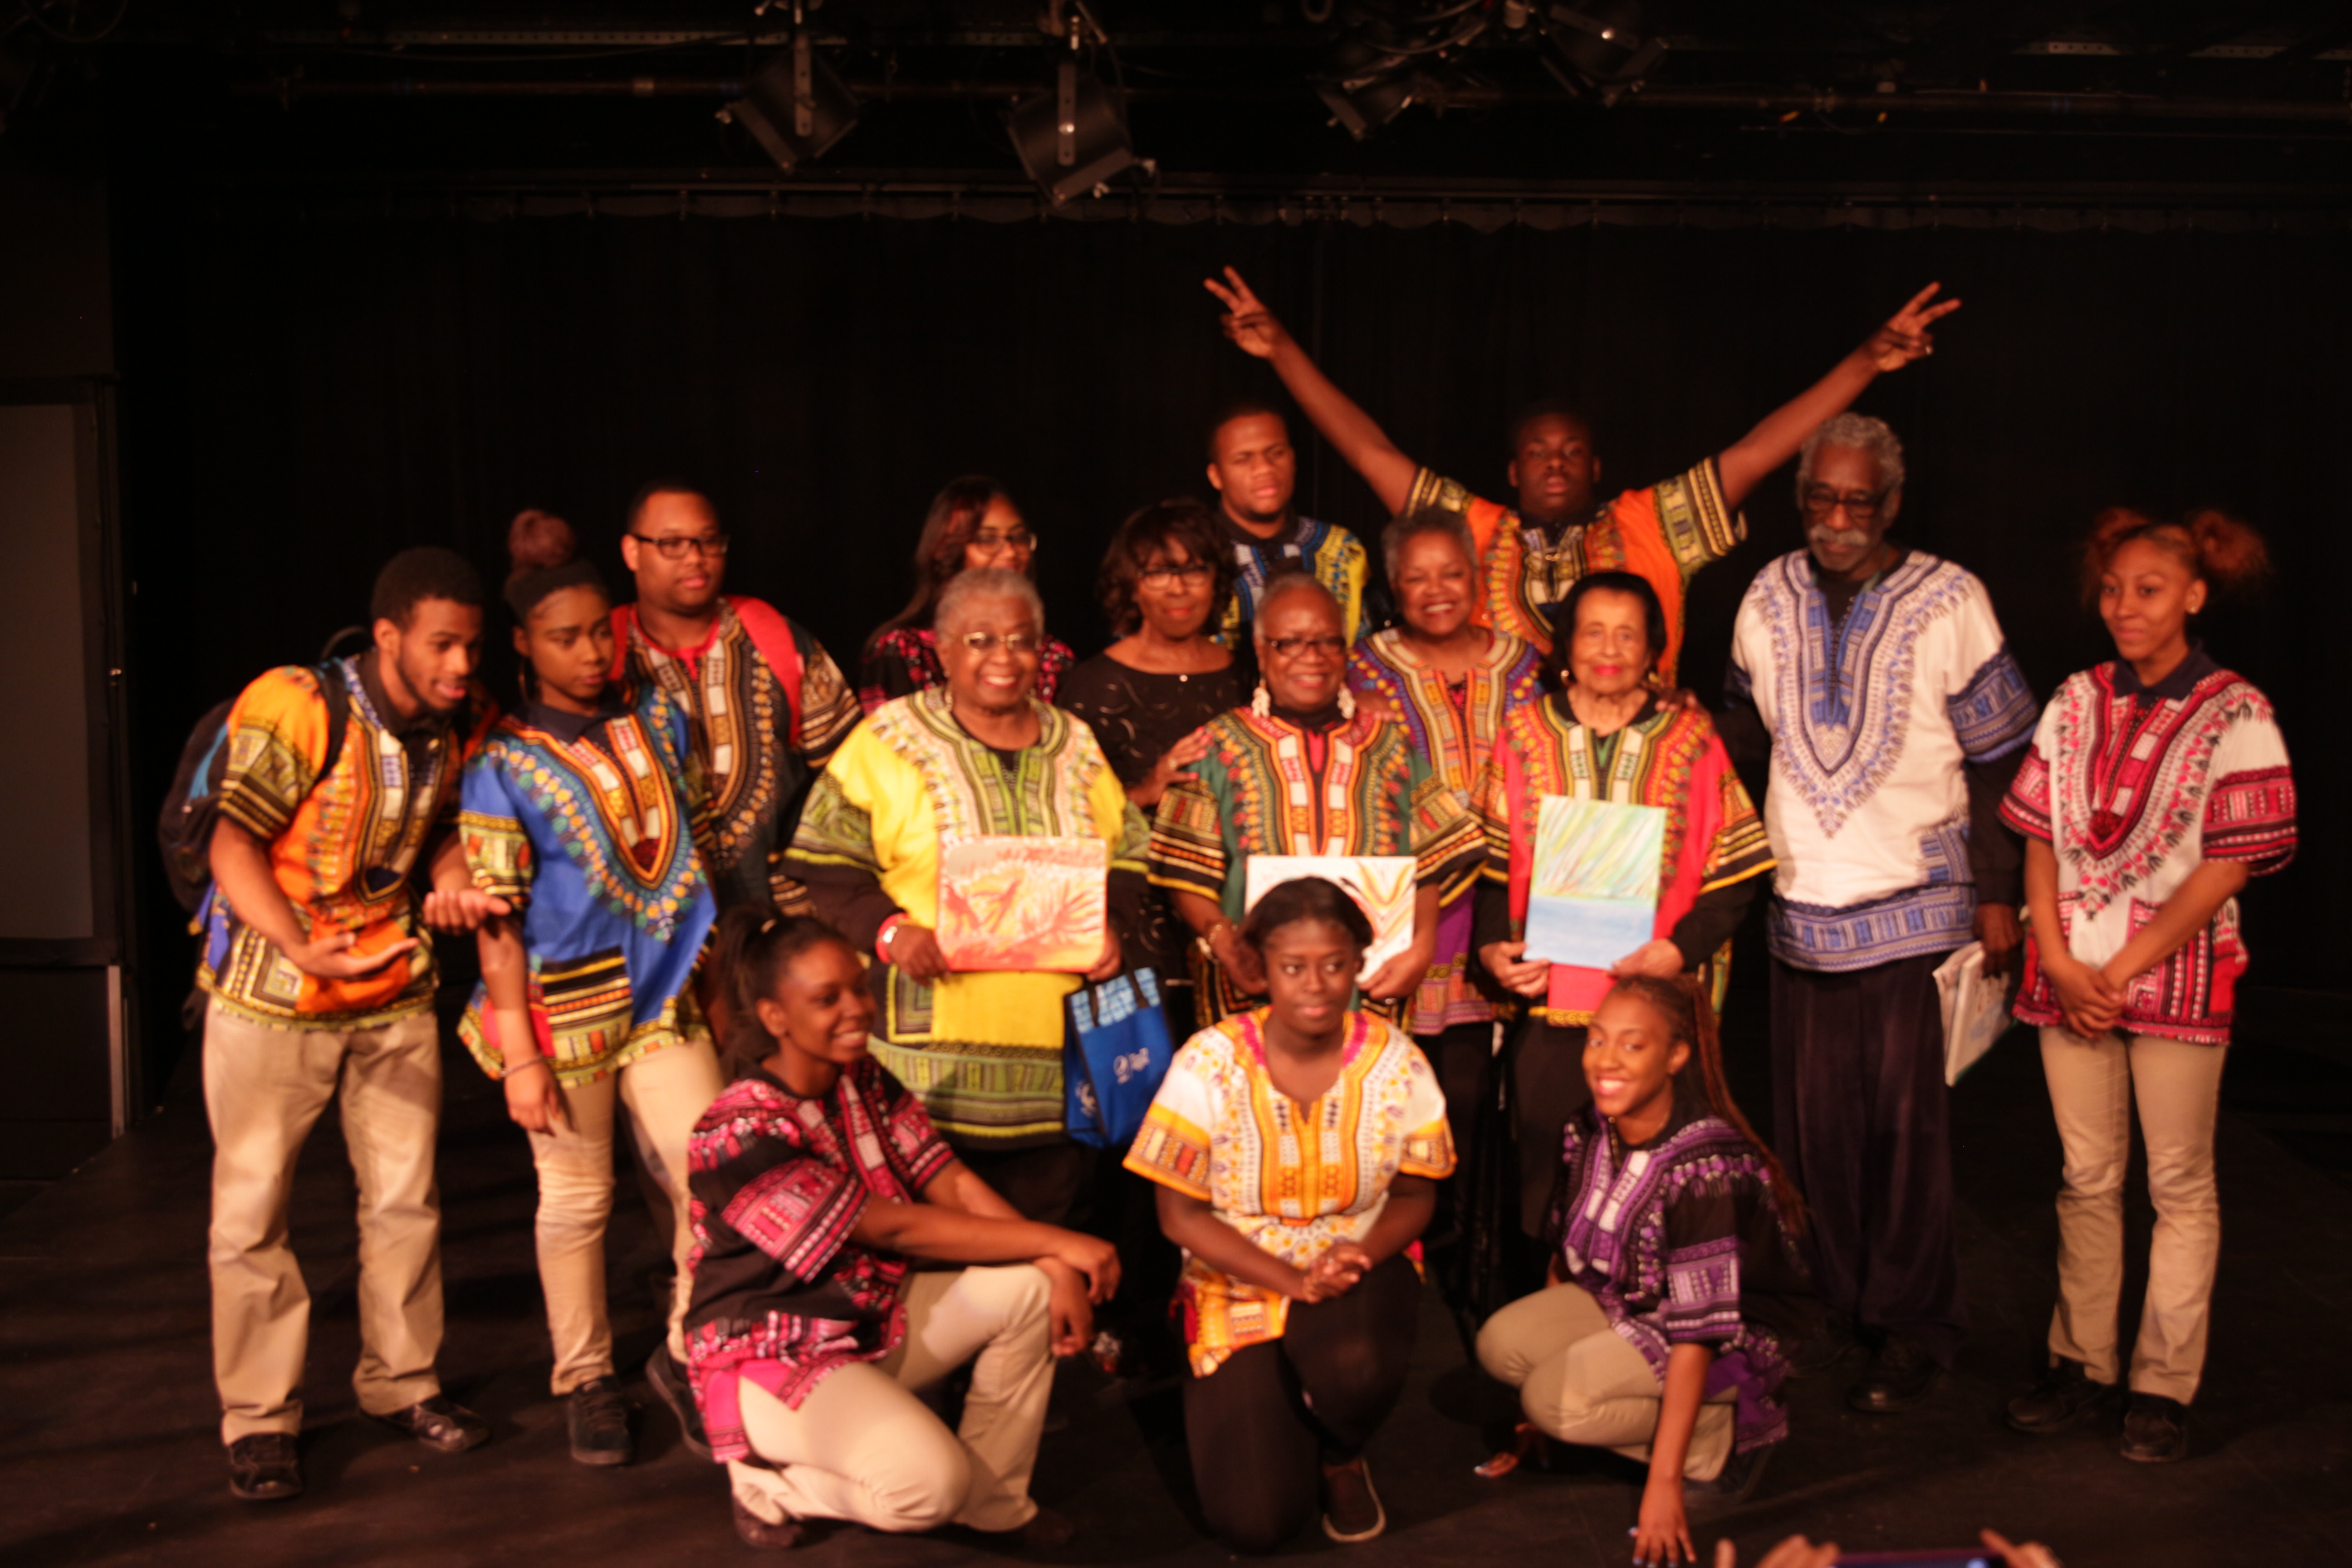 Billicia Hines - 16HG-021 Group pic of performance at Studio Theatre2